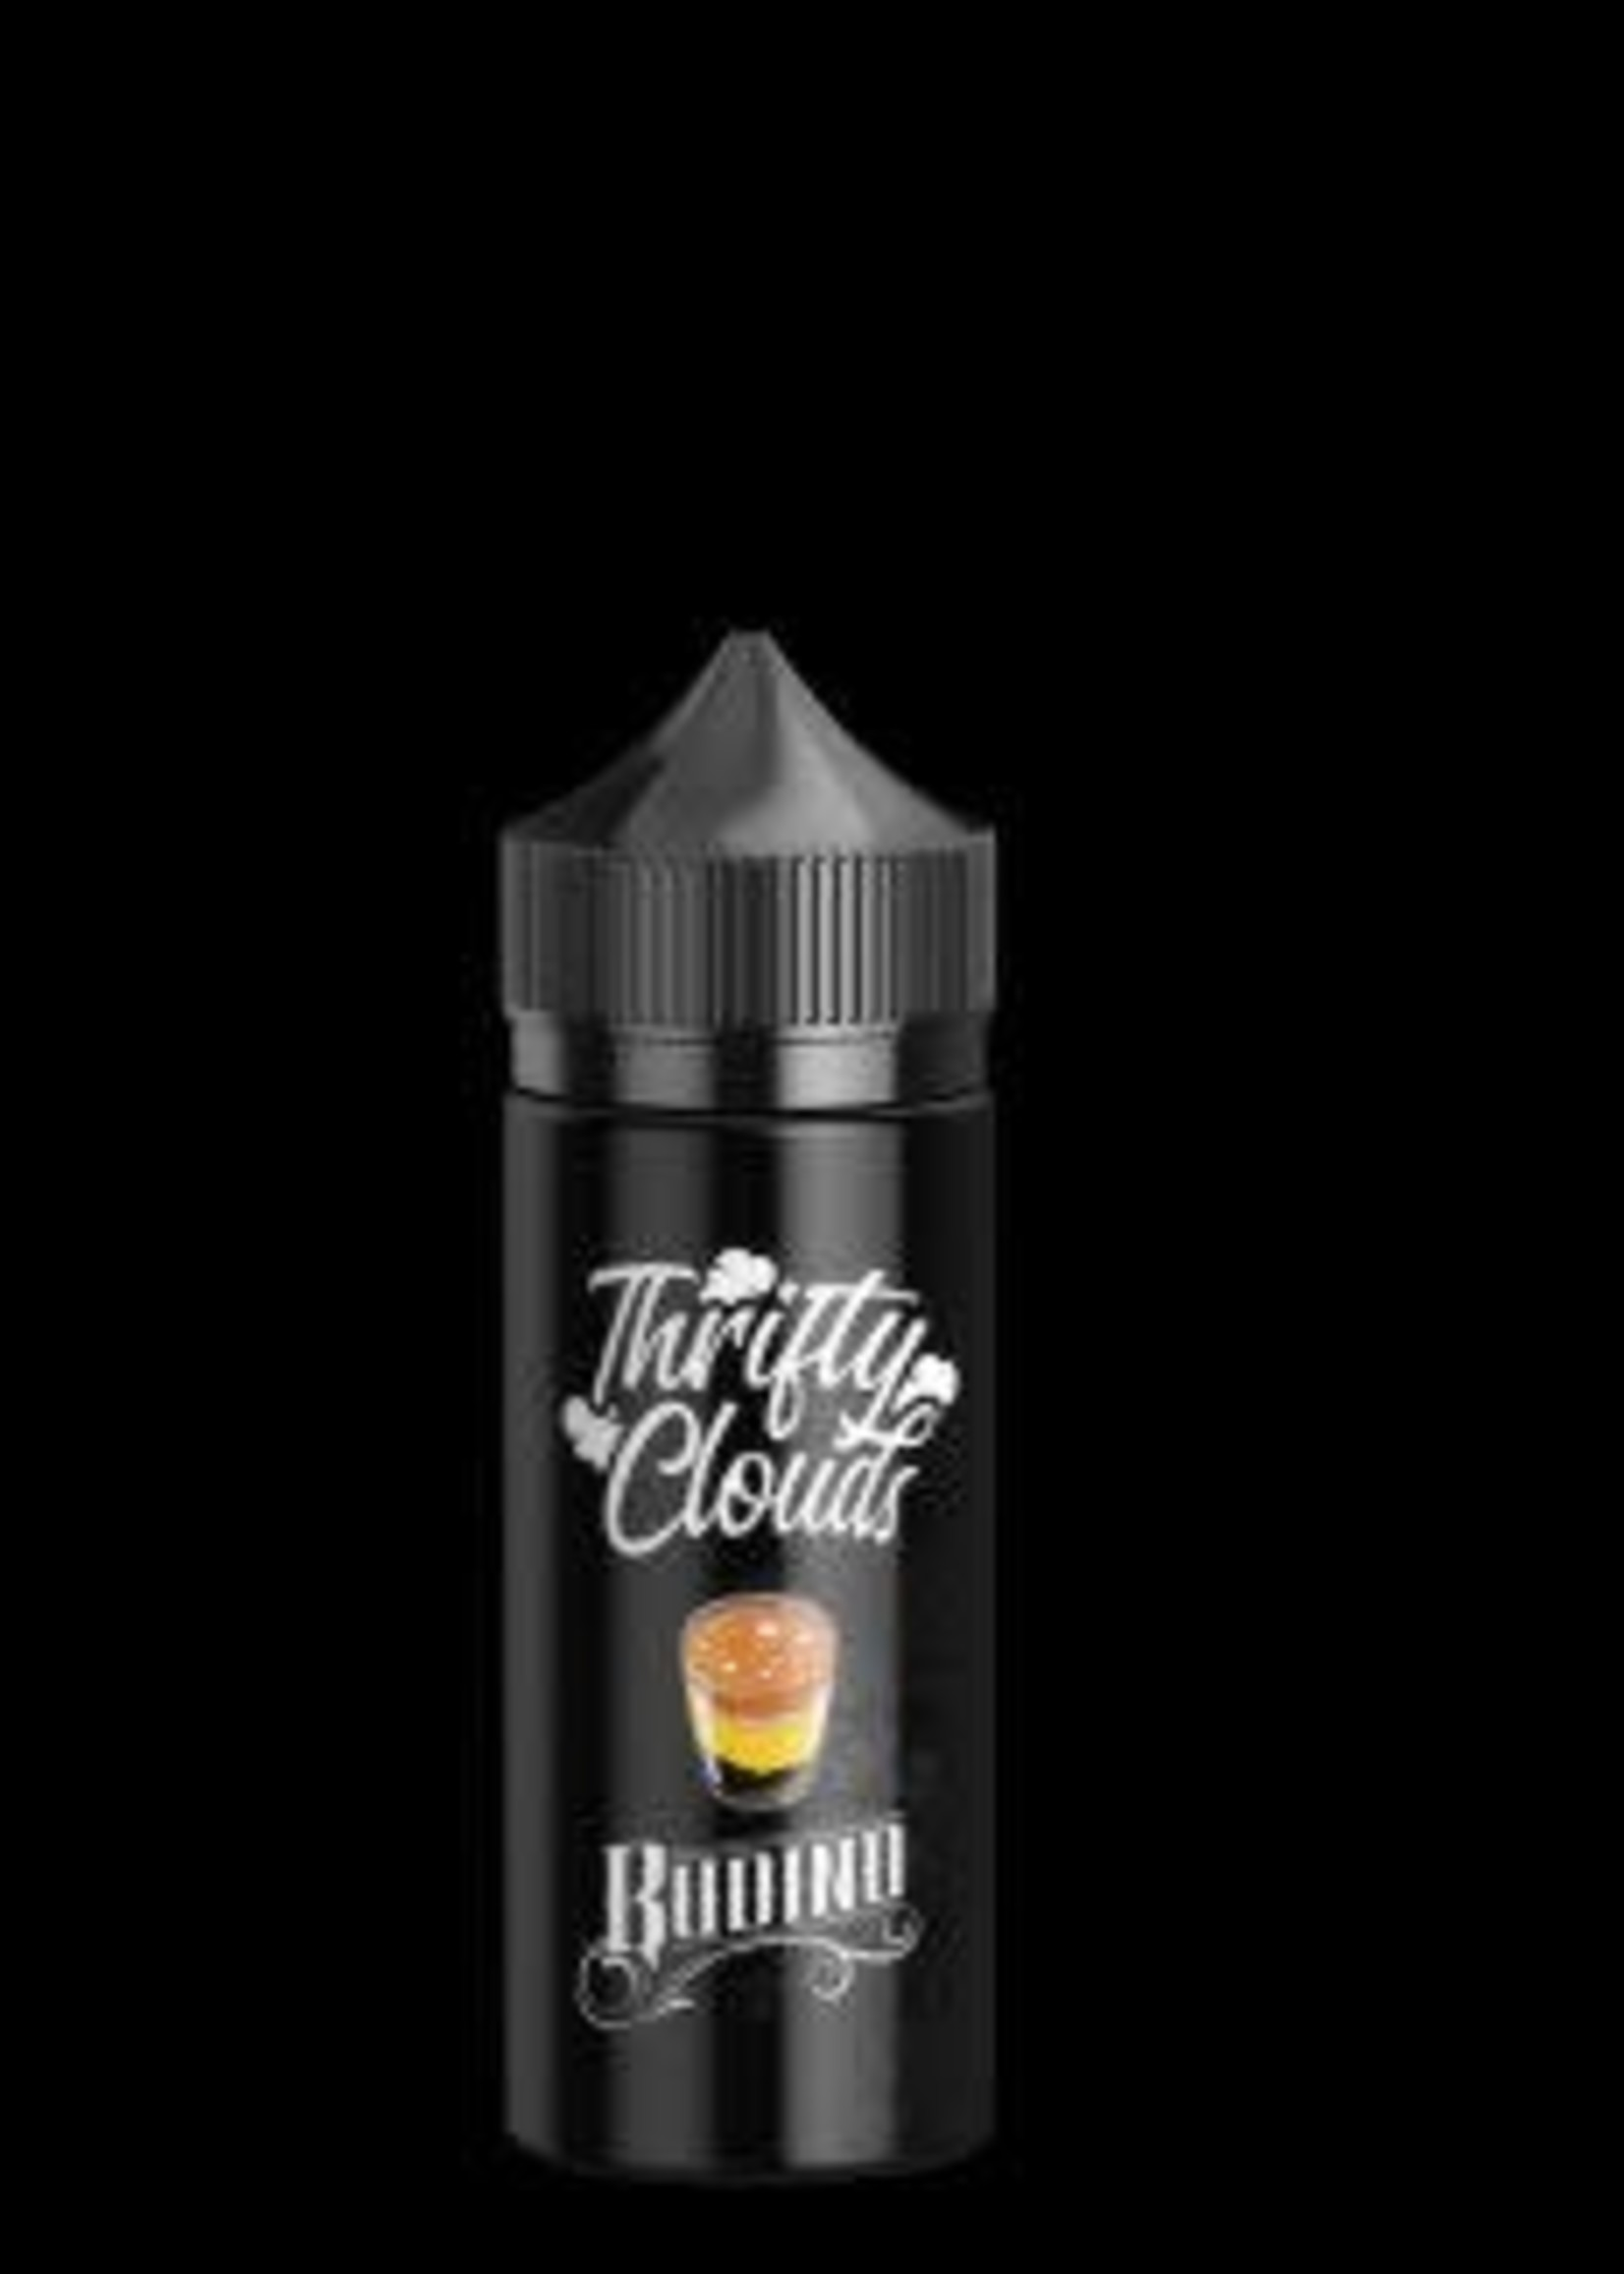 Thrifty clouds Vape flavour - Budino MTL 30ml- 12mg